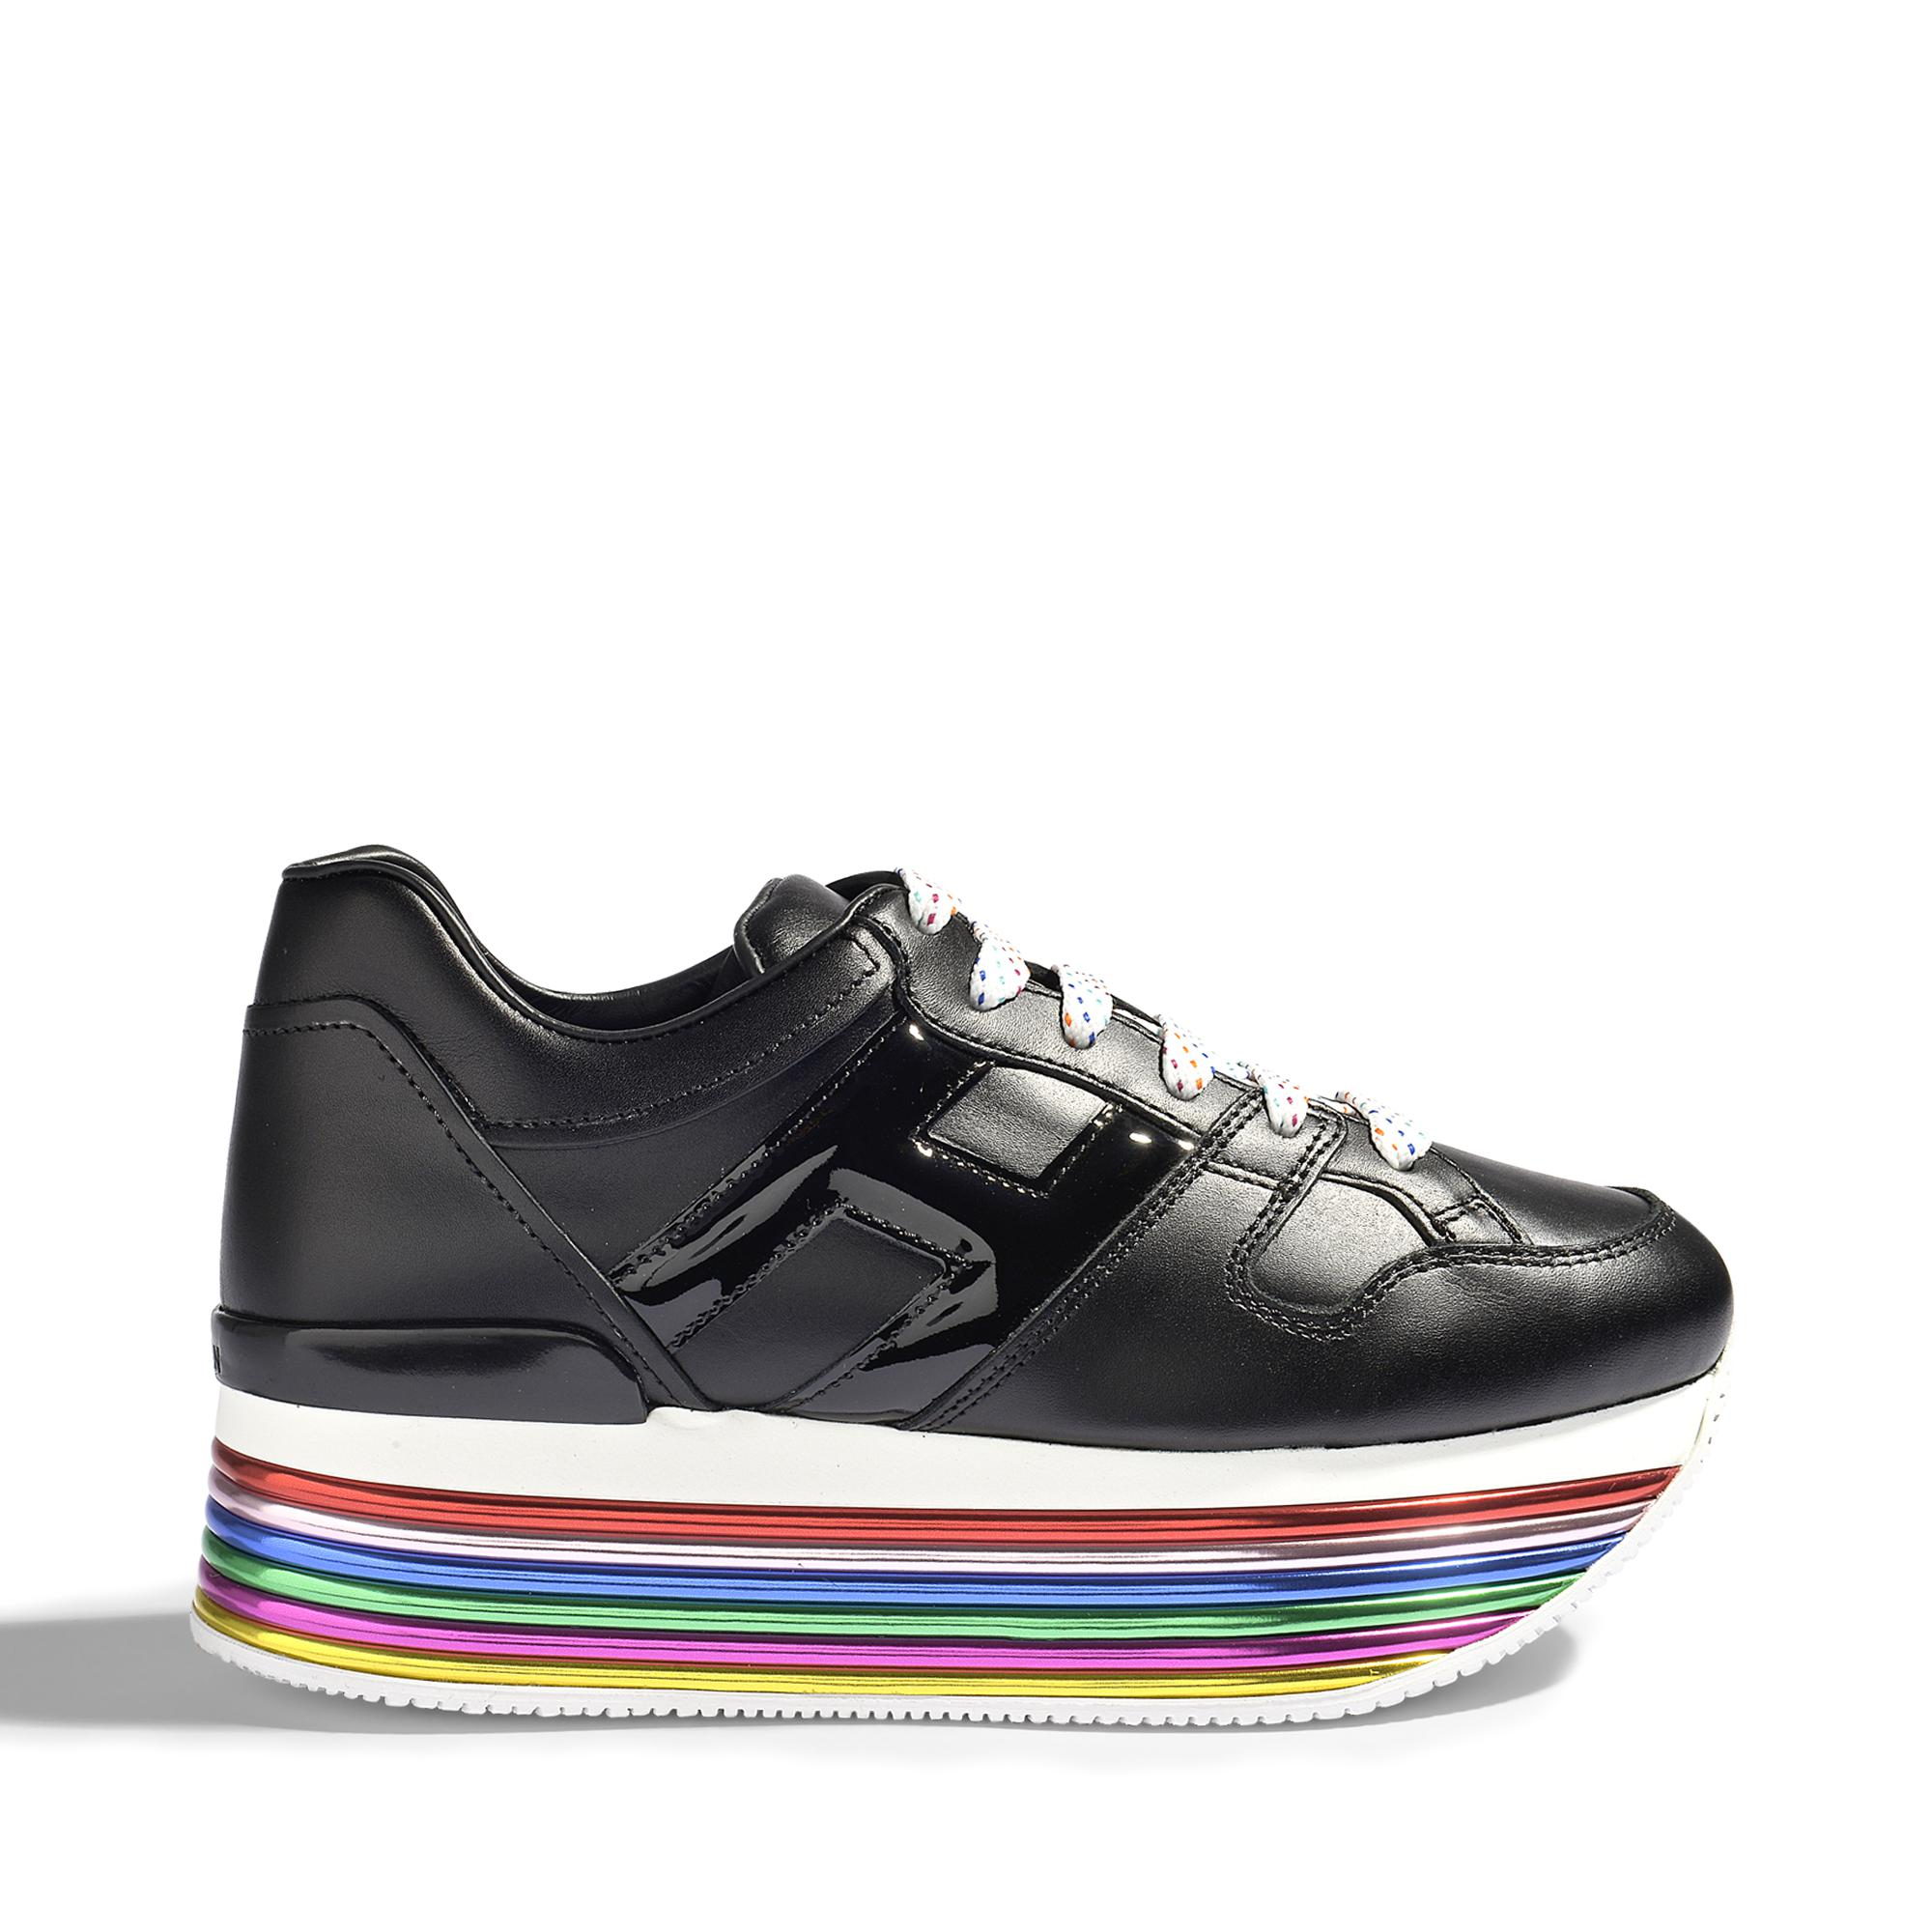 H352 Maxi Platform Mignon Sneakers in Black and Multicolour Leather Hogan qOJdH9sRyg